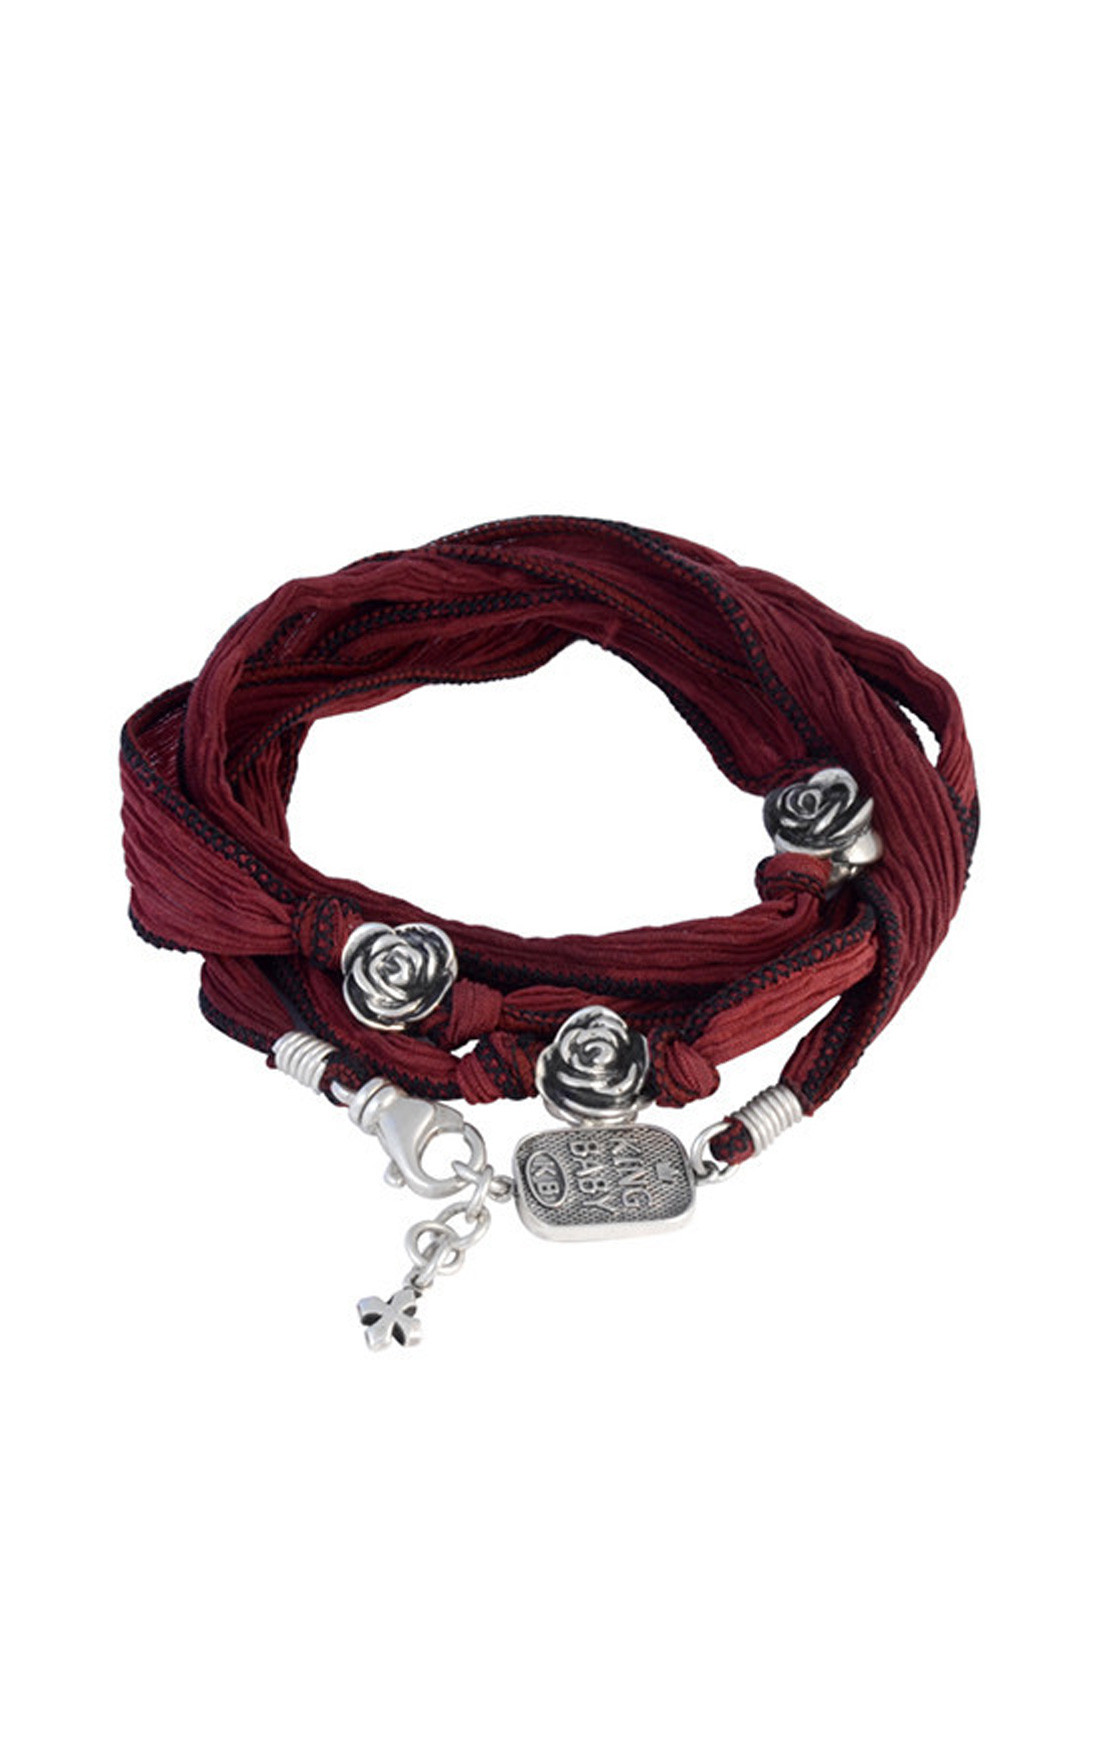 King Baby - Double Wrap Cherry Silk Bracelet with Roses (K42-5555)